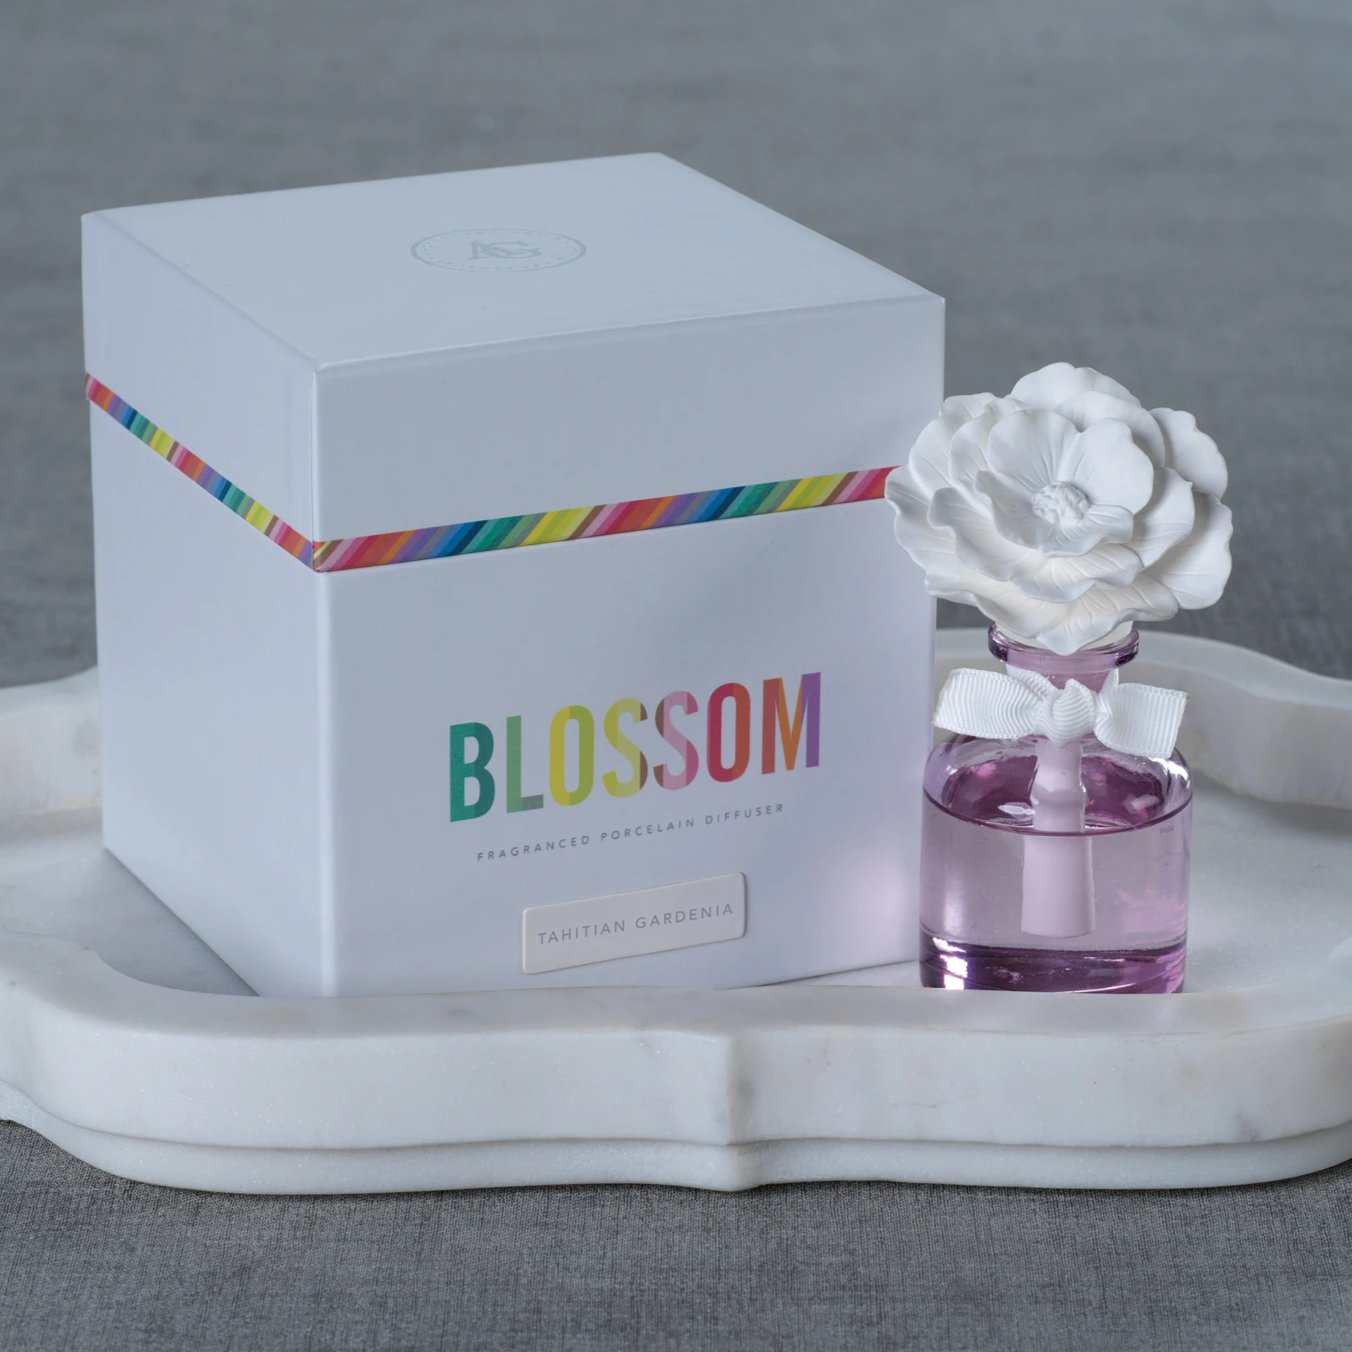 Blossom Porcelain Diffuser - CARLYLE AVENUE